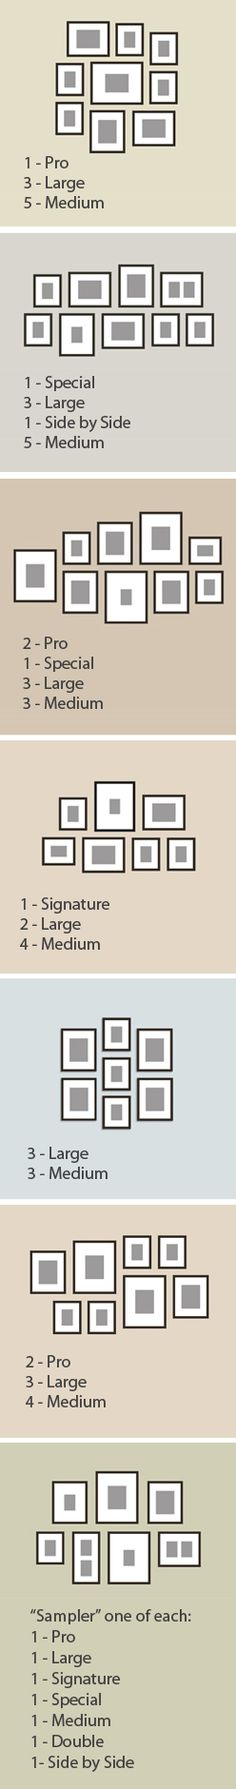 A handful of ideas for our instant #gallerywall frames. They come with their own hanging templates, so set up's a breeze. Best part: Everything's changeable, so you can update & switch out prints as often as you like. (5 second matting's pretty handy, too – click through to see the demo at the bottom of the home page.)